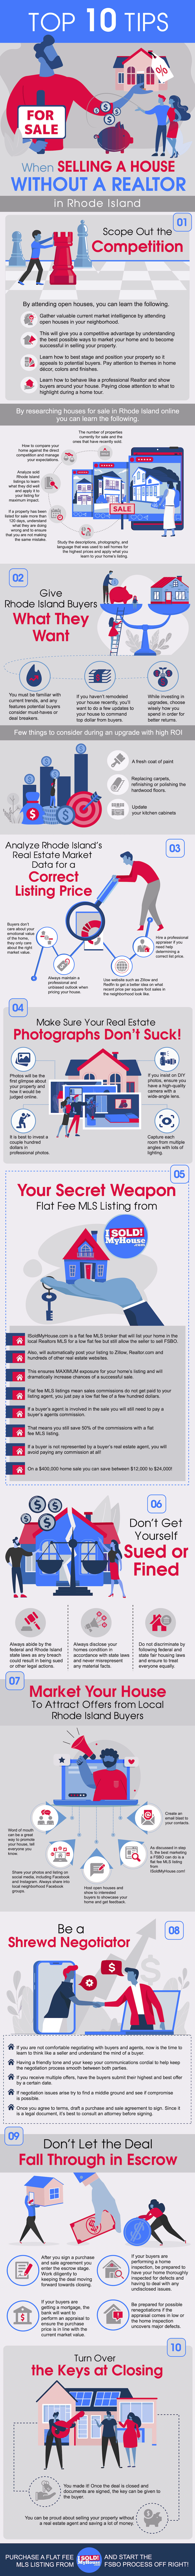 infographic of the 10 steps to sell a house in rhode island without an agent